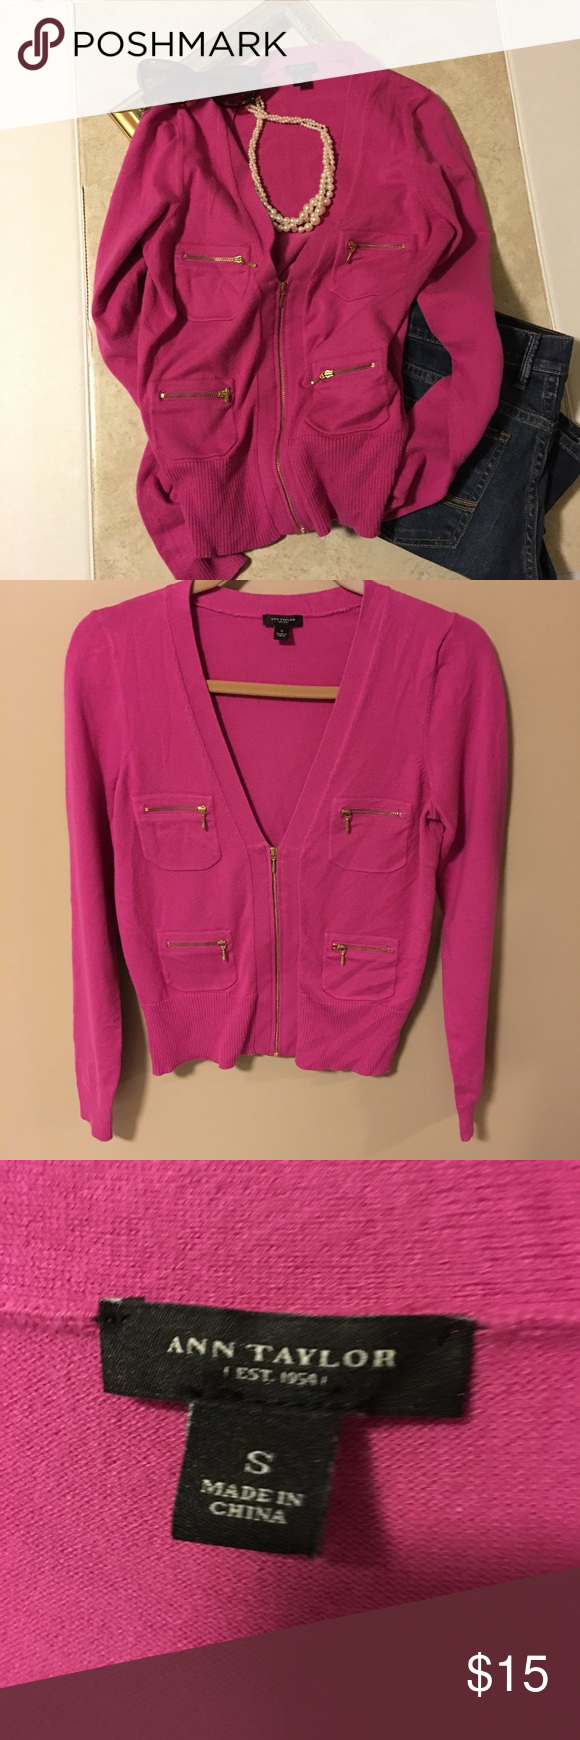 Ann Taylor Hot Pink Cardigan With Zippers Size S Sporty Sweater